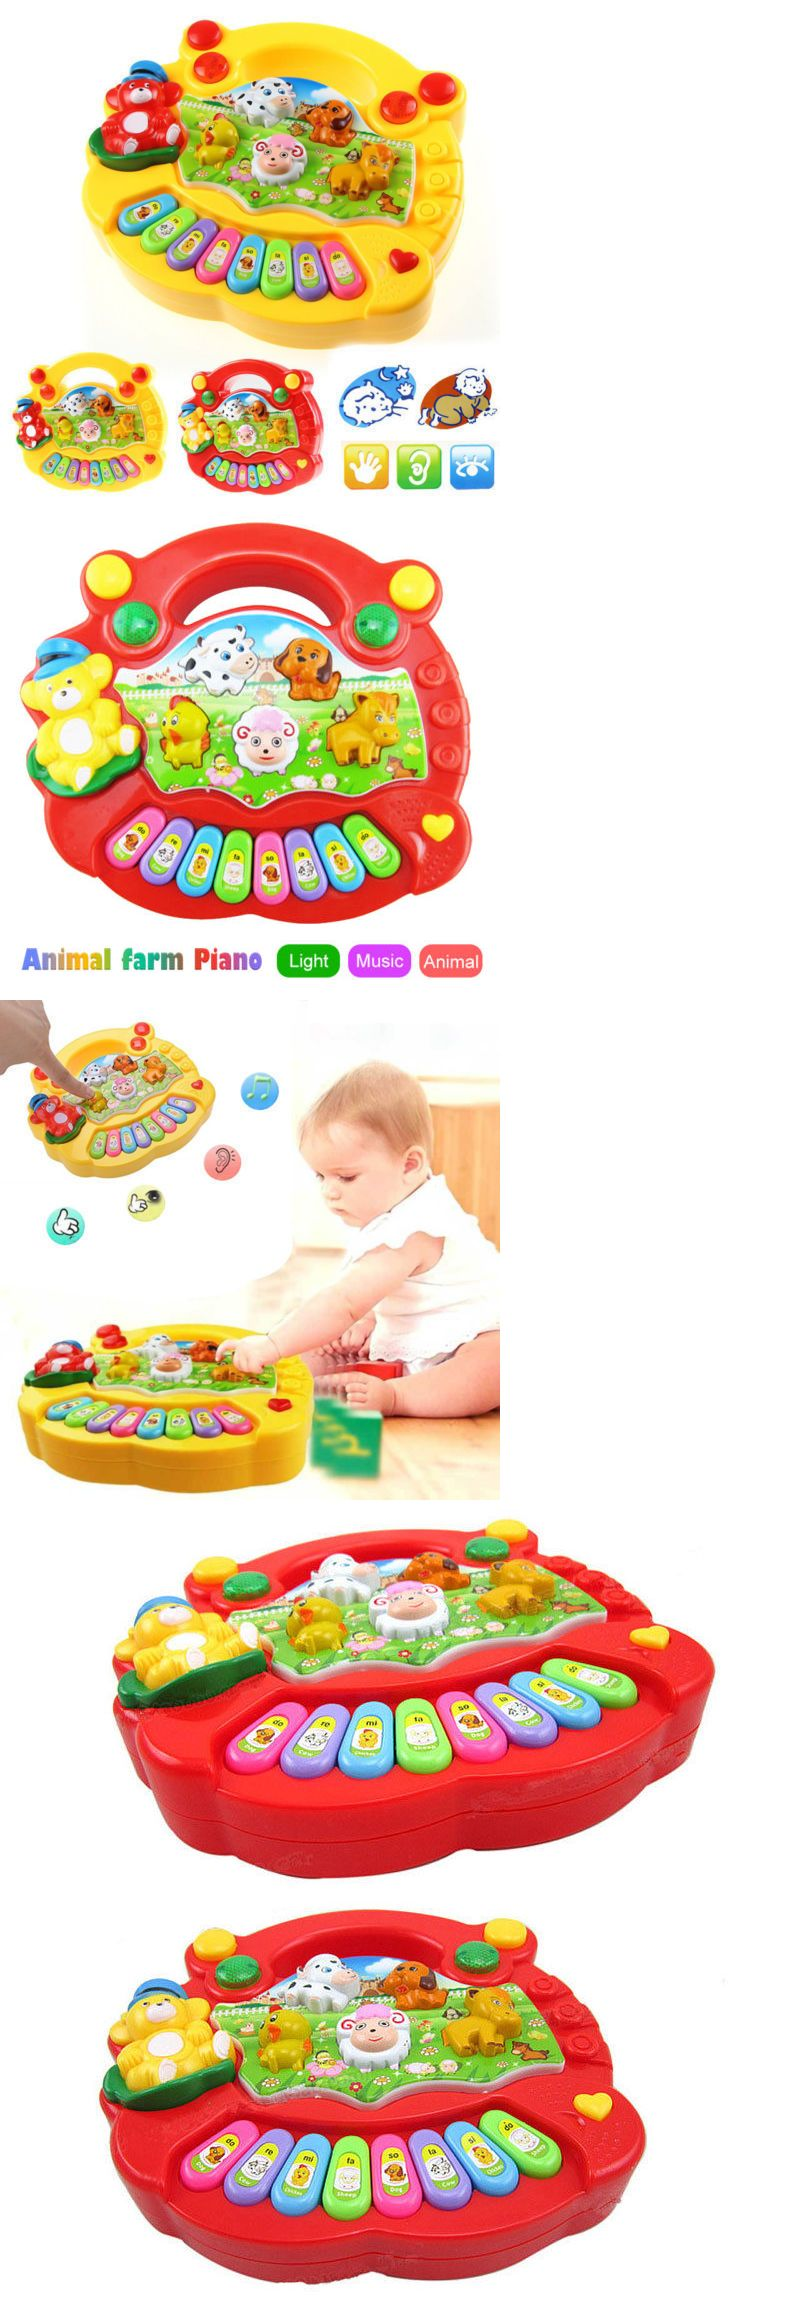 Jual Animal Farm Piano Update 2018 Bonjela Gel For Teething And Mouth Ulcers 15 Gram Baby Music Toy Electronic Keyboard Sound Learning Toys 19068 Kids Top Buy